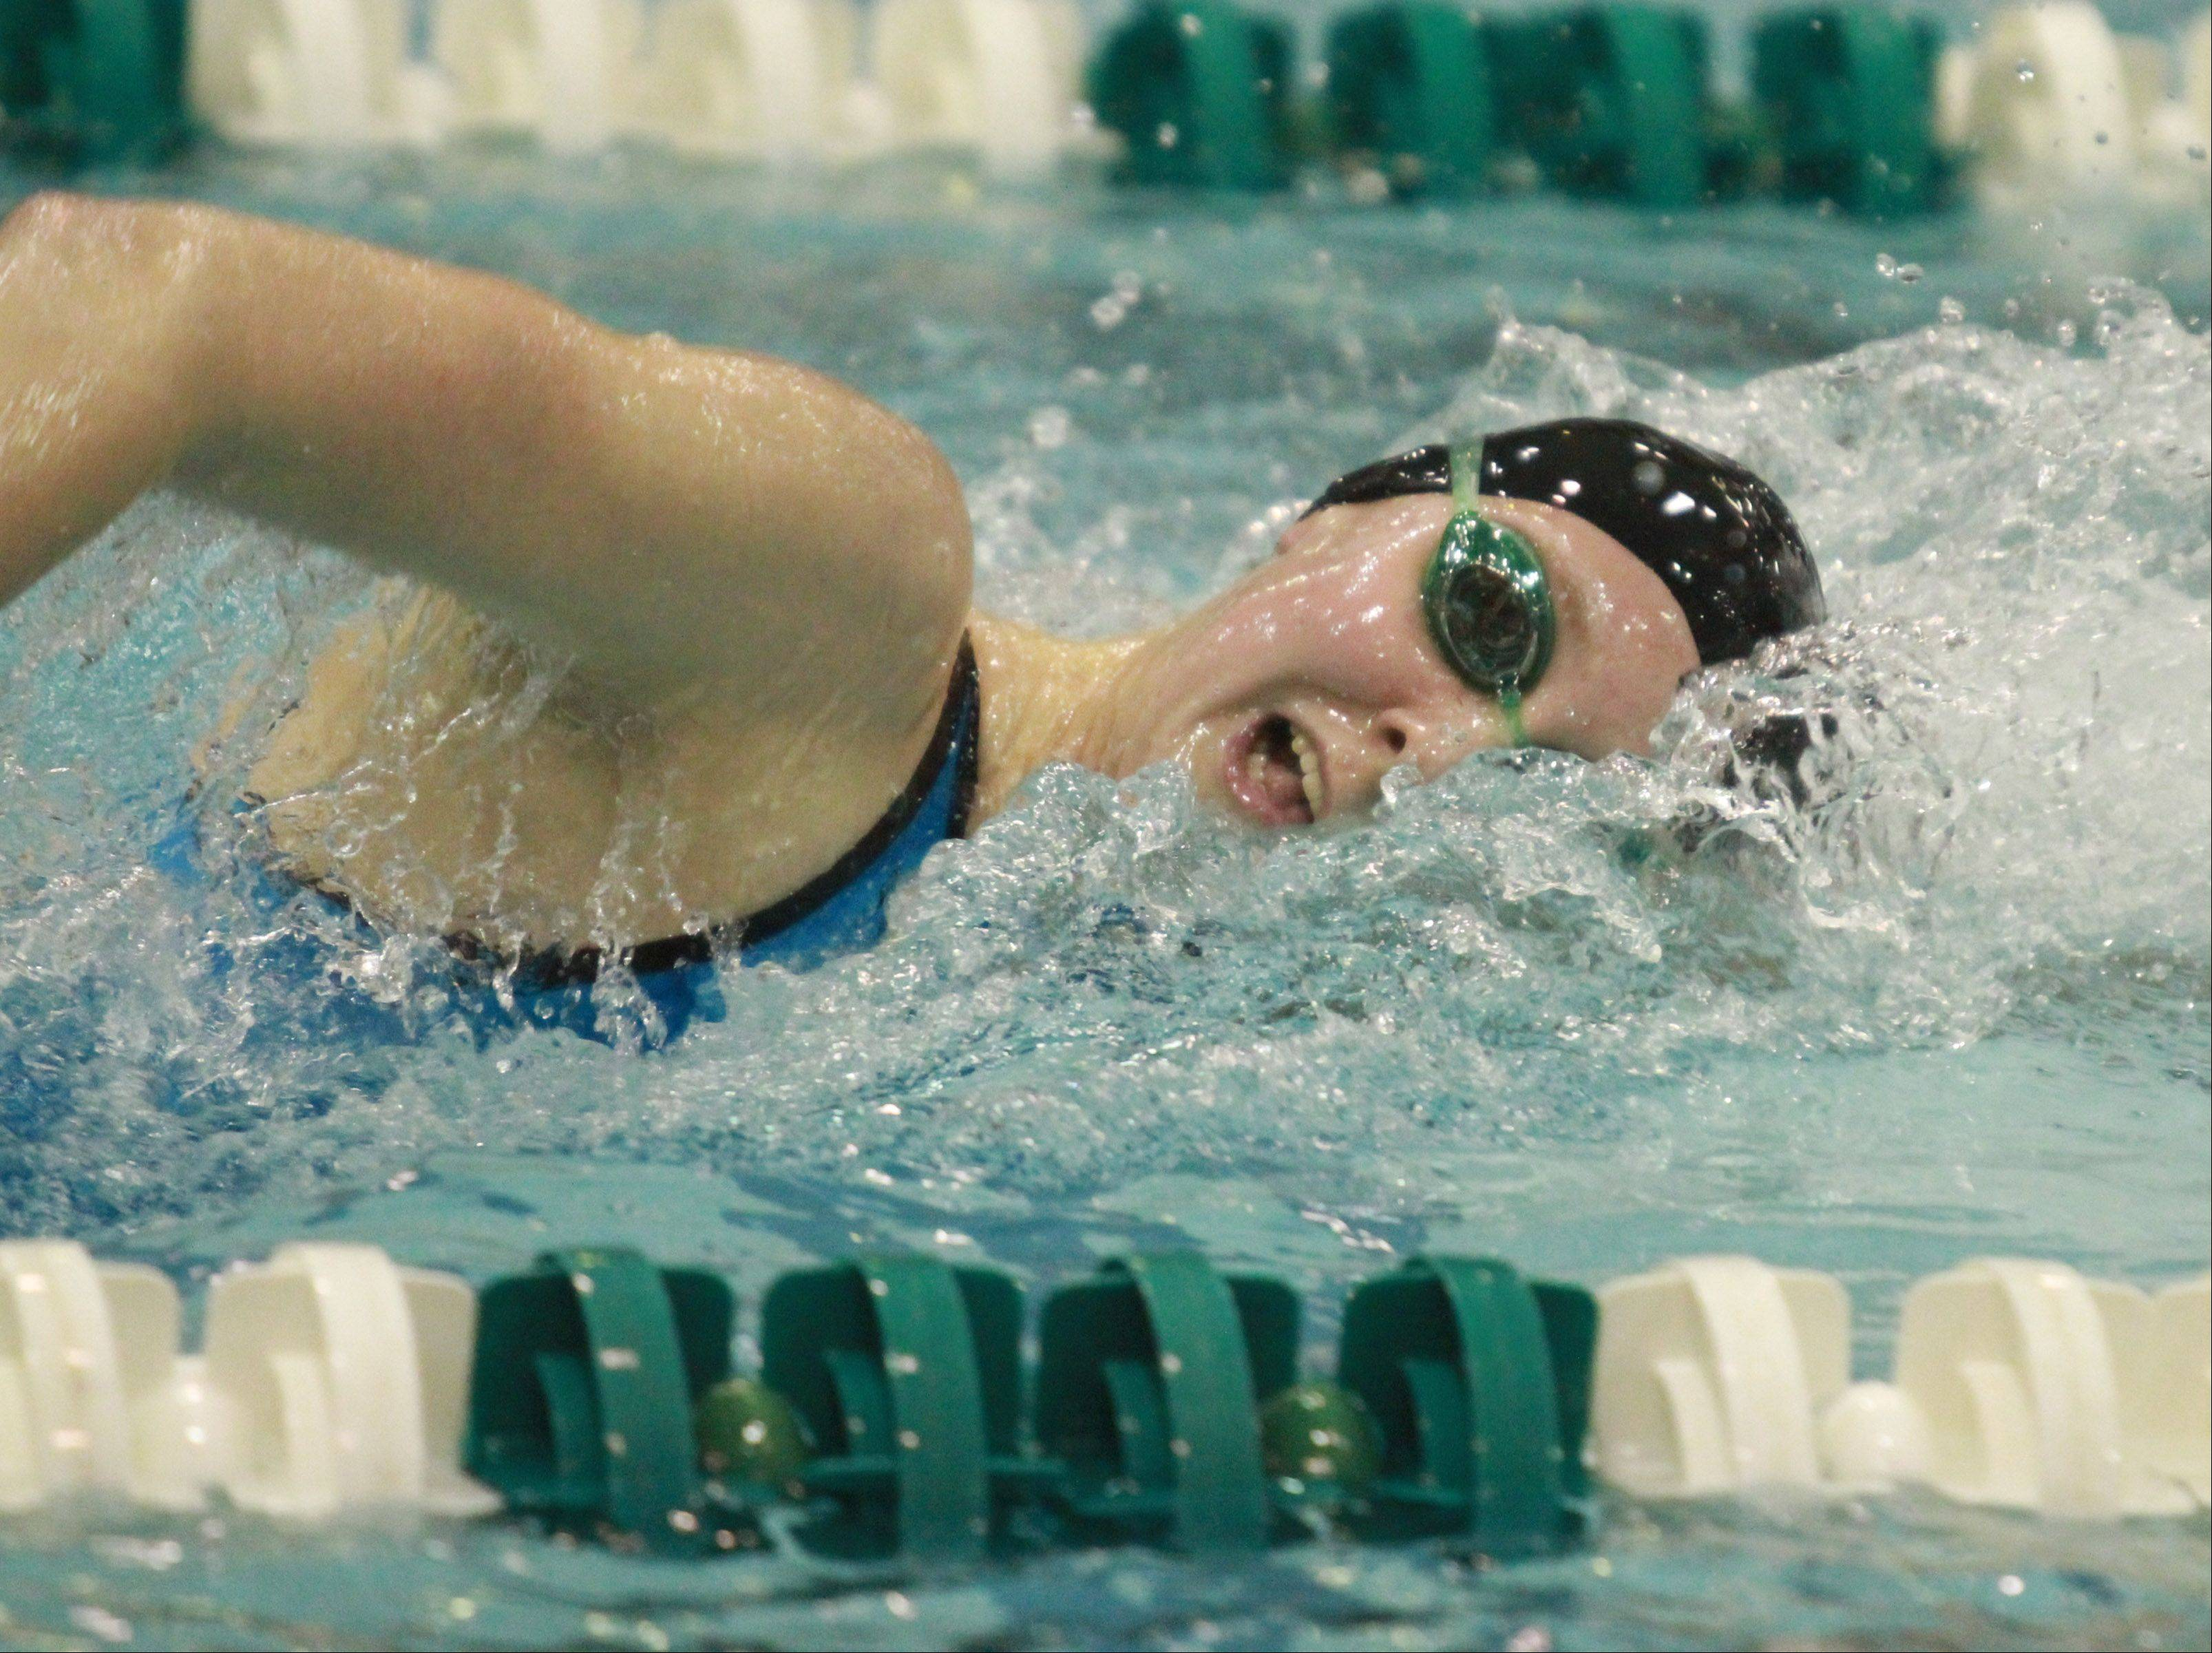 Barrington's Kristen Jacobsen finished 1st in the 500 yard freestyle at the girls state swimming finals on Saturday in Winnetka.